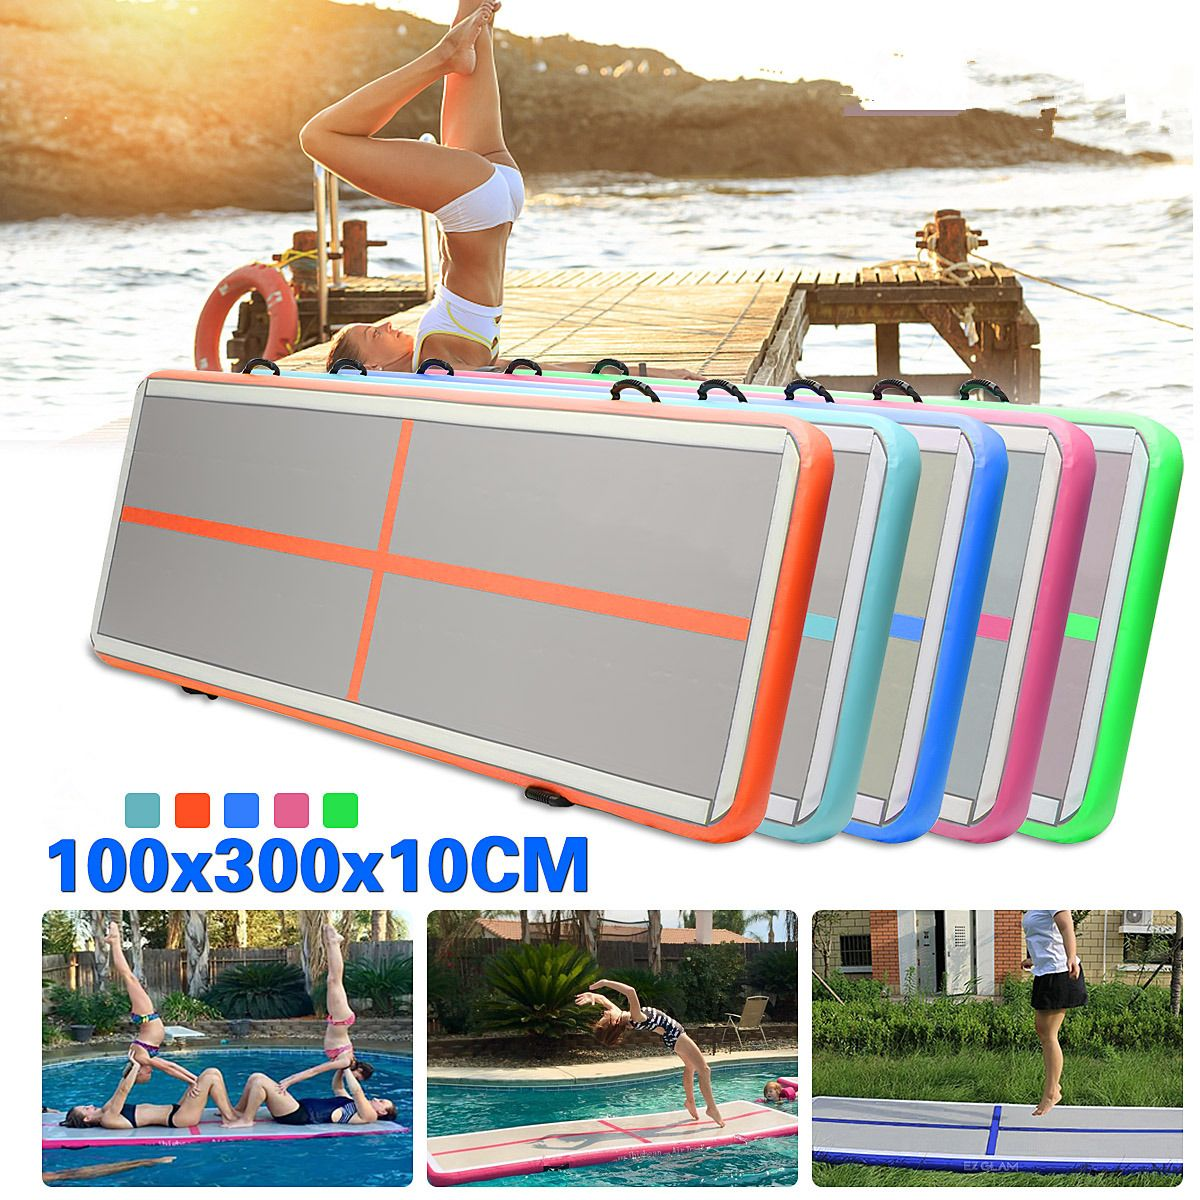 Gofun AirTrack Air Tumbling Track Training Gymnastics Mats Set Inflatable Balance Equipment Exercise 100*300*10cm 5 Colors